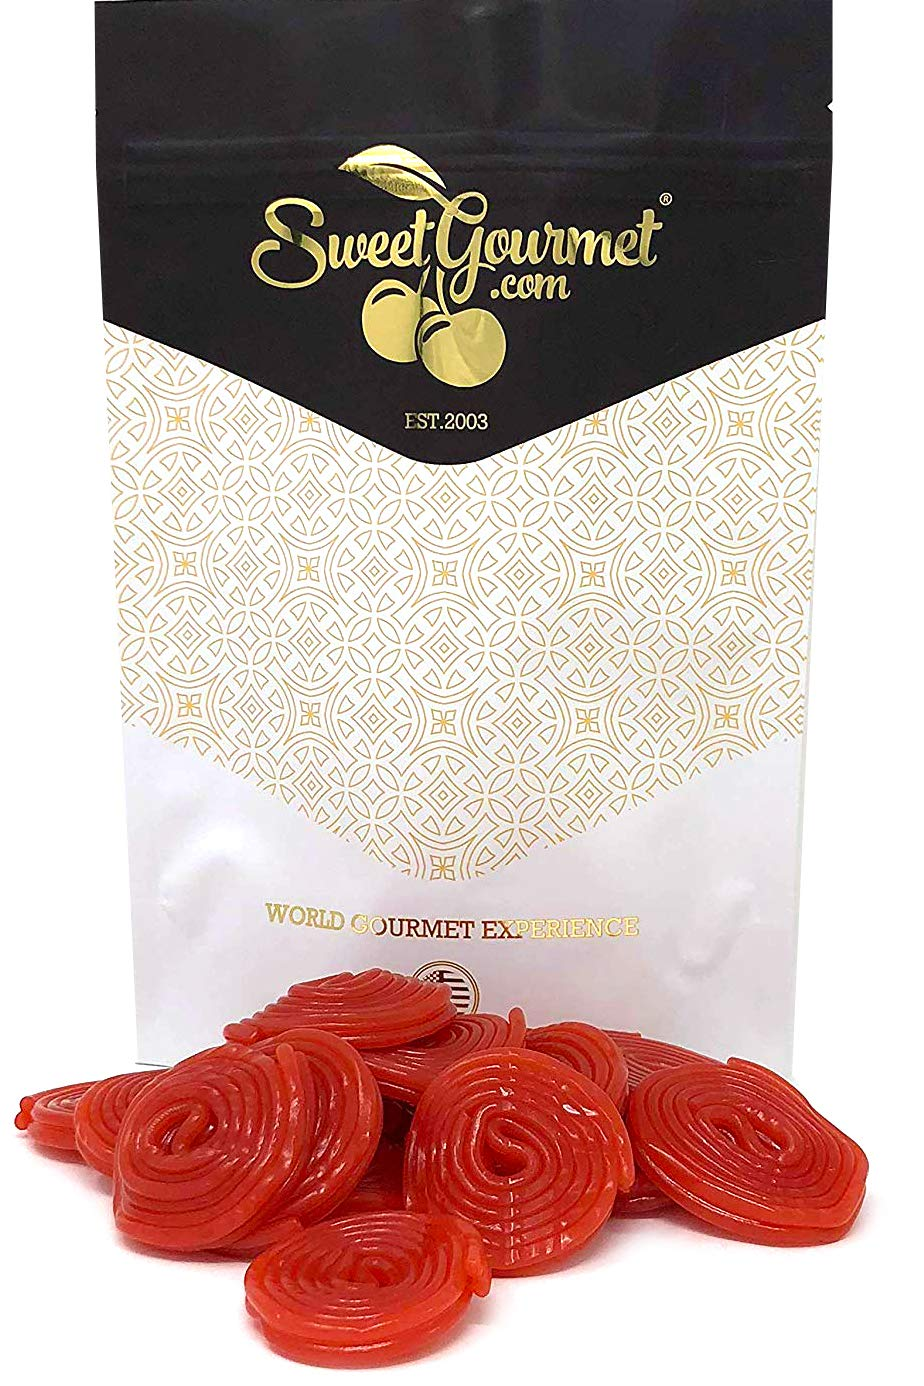 Italian Strawberry Licorice Wheels | Bulk Candy | Natural Colors and Flavors, GMO Free | 1 pound